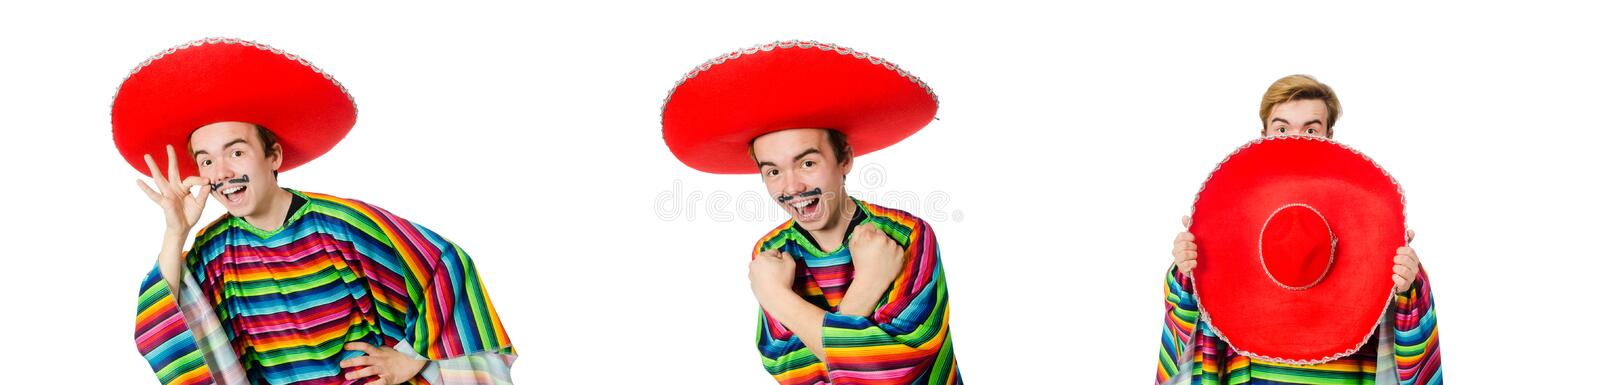 The funny young mexican with false moustache isolated on white royalty free stock photos